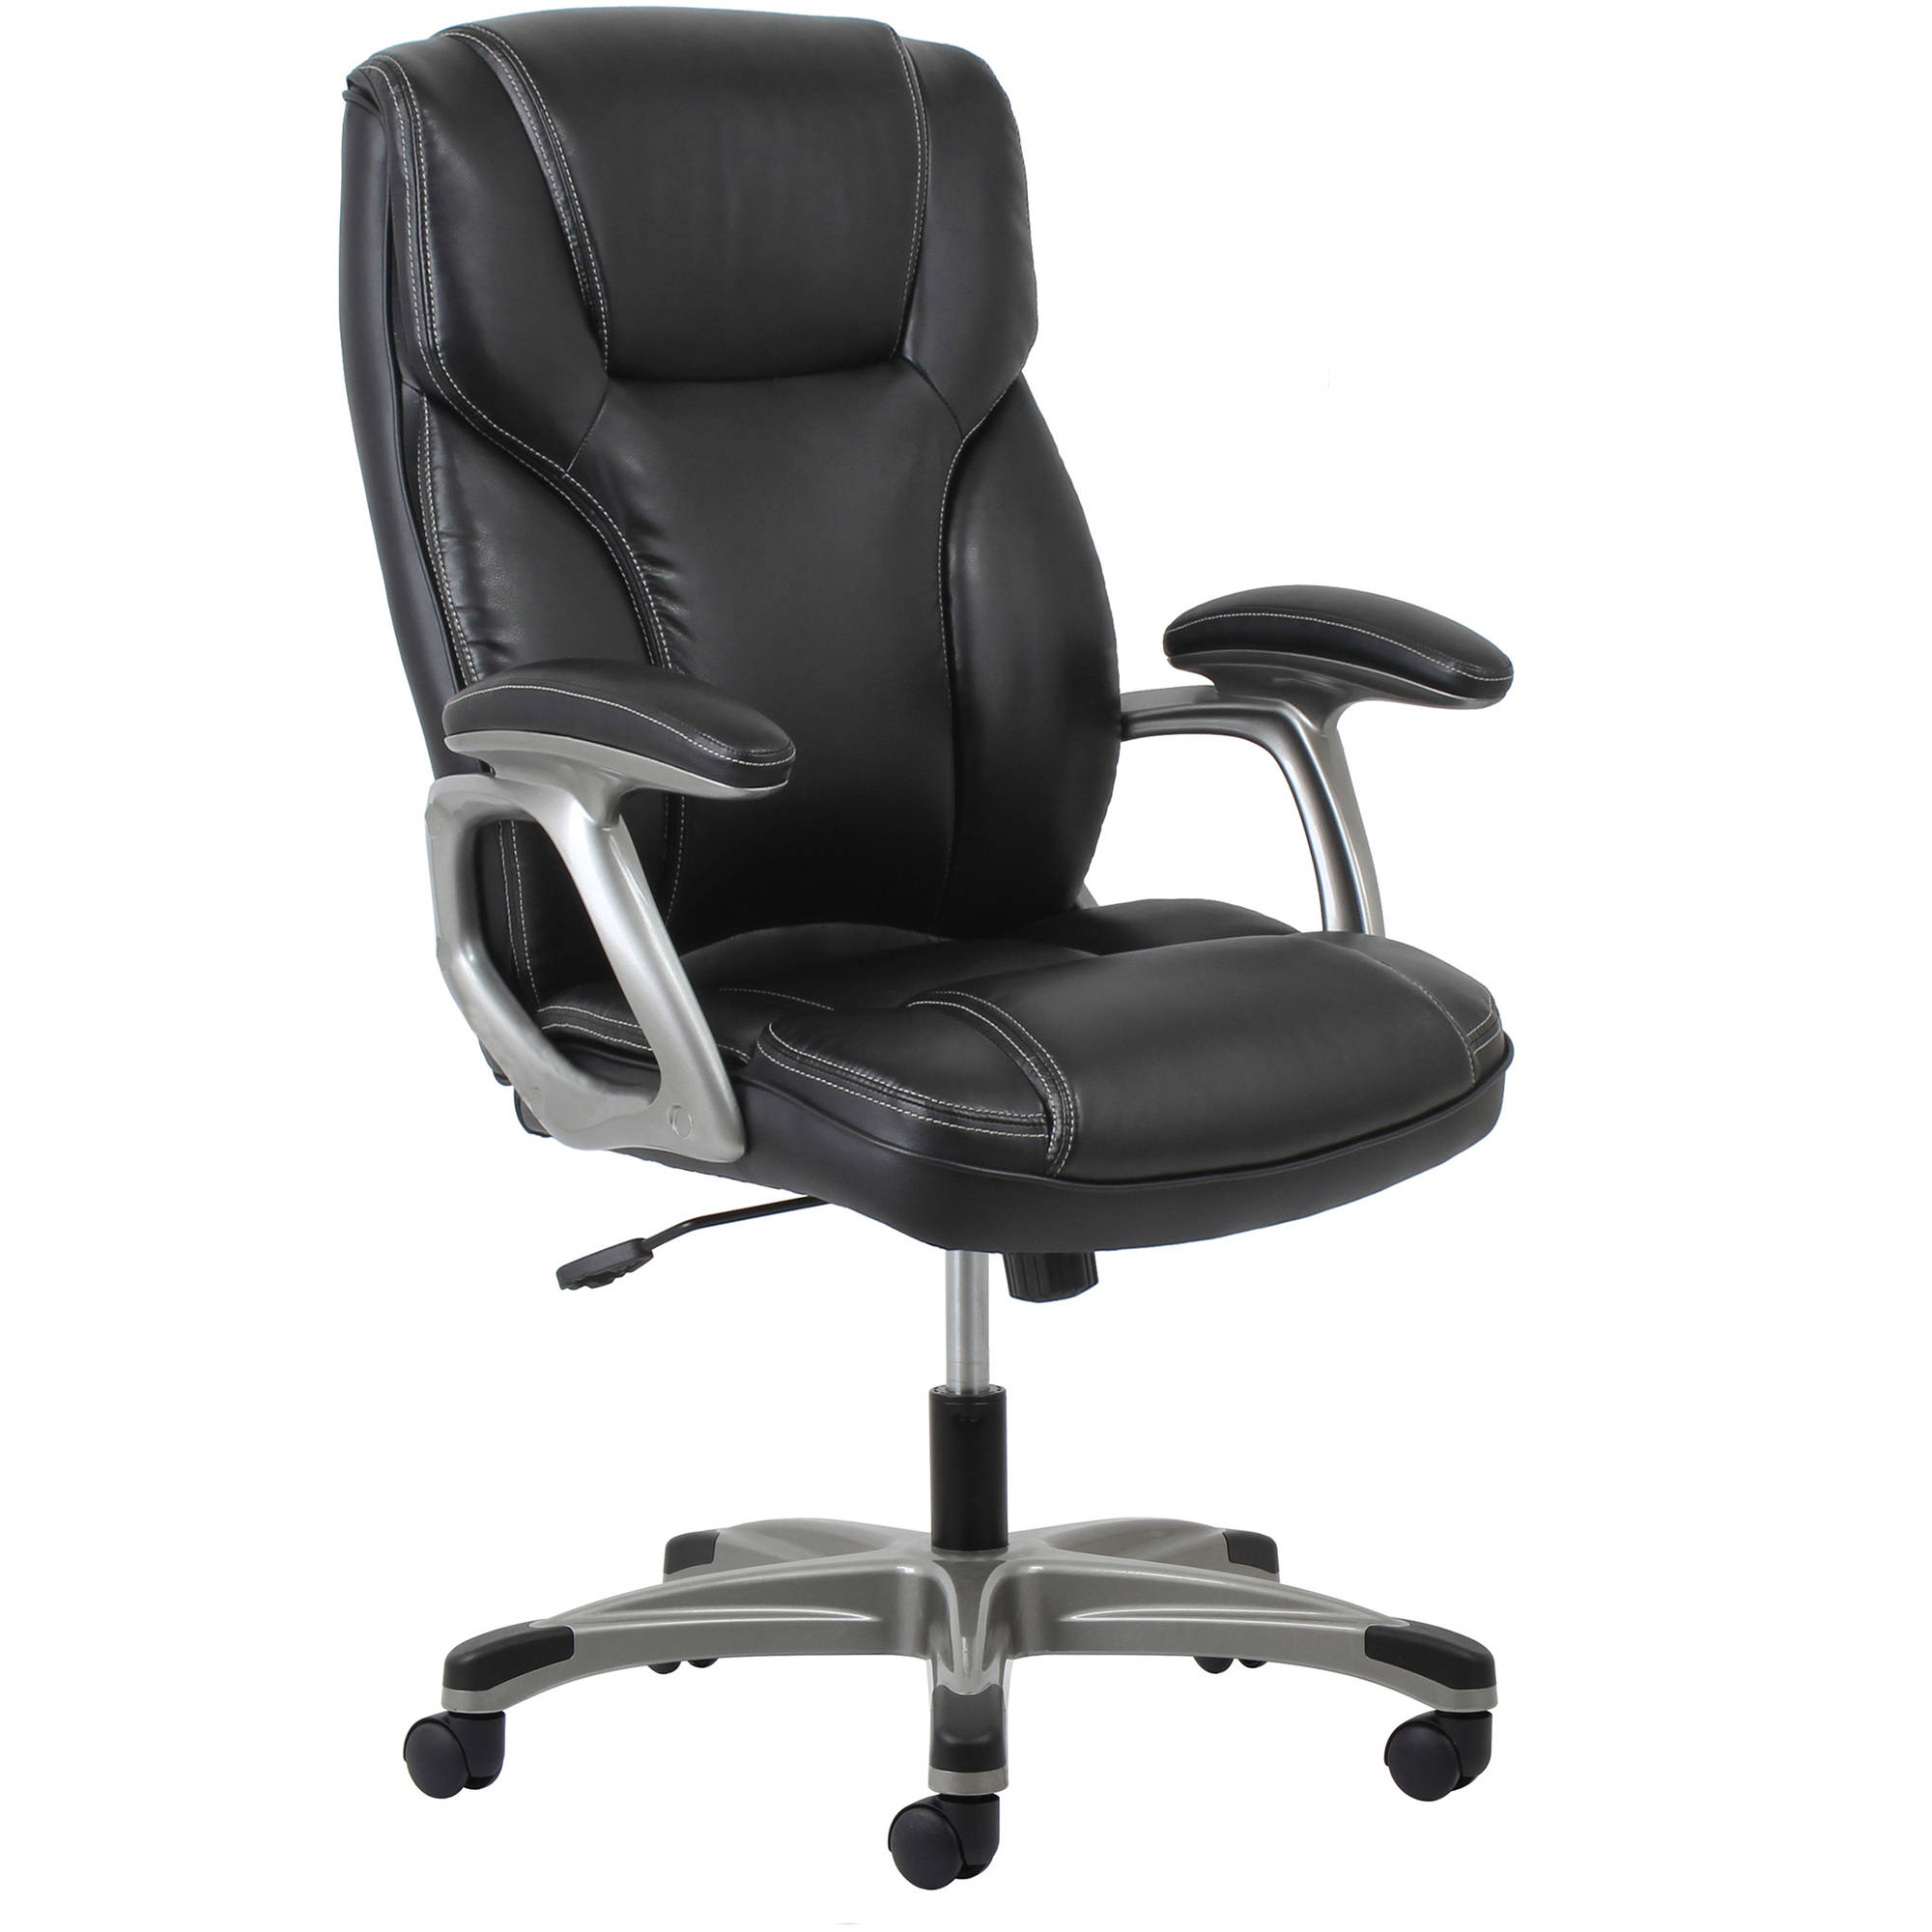 Essentials by OFM Ergonomic High Back Leather Executive Office Chair with  Arms  Black Silver   Walmart comEssentials by OFM Ergonomic High Back Leather Executive Office  . Silver Office Chair. Home Design Ideas